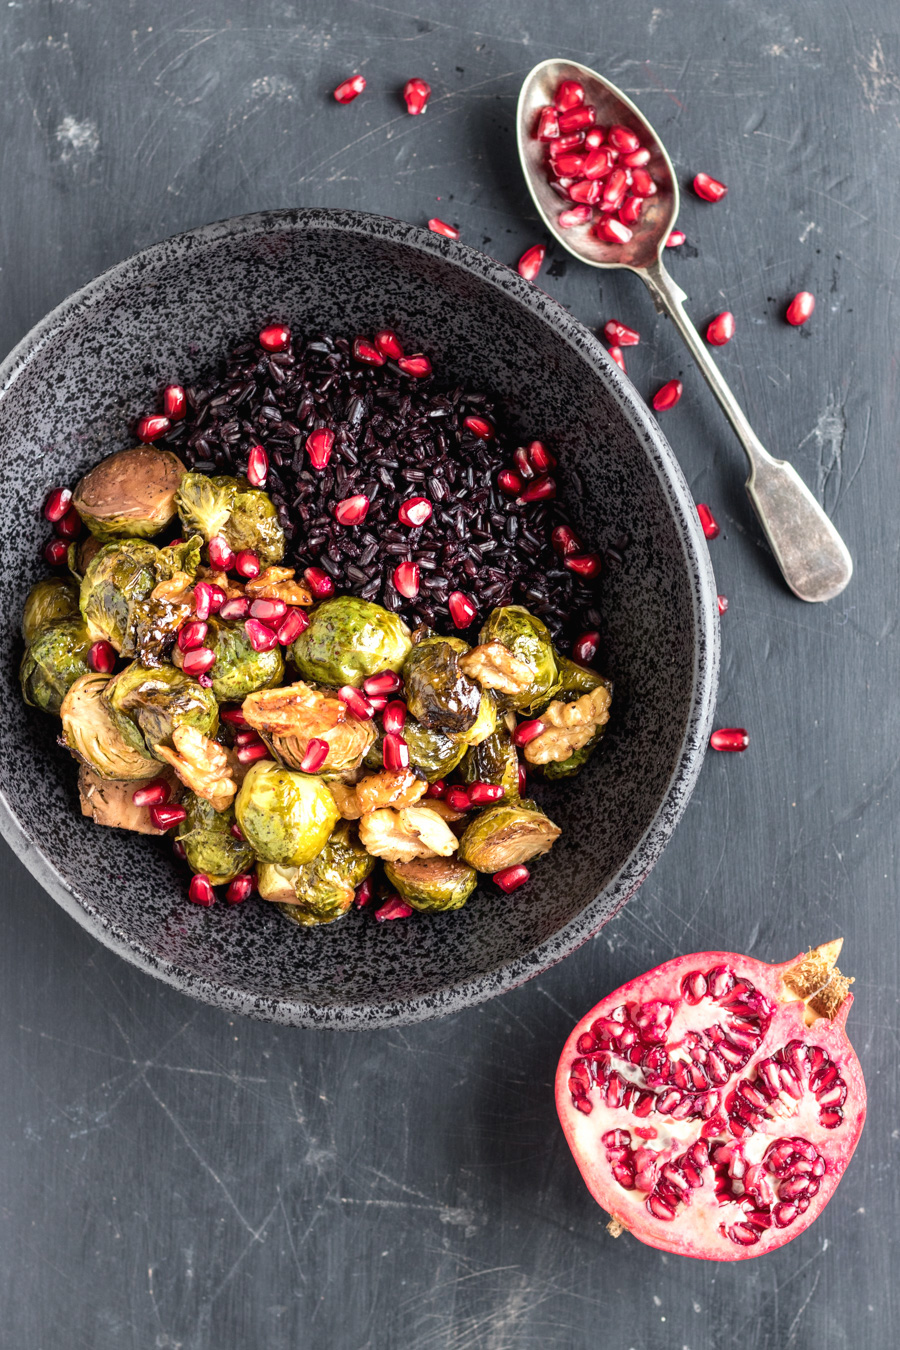 Balsamic Glazed Brussels Sprouts With Pomegranate And Toasted Walnuts